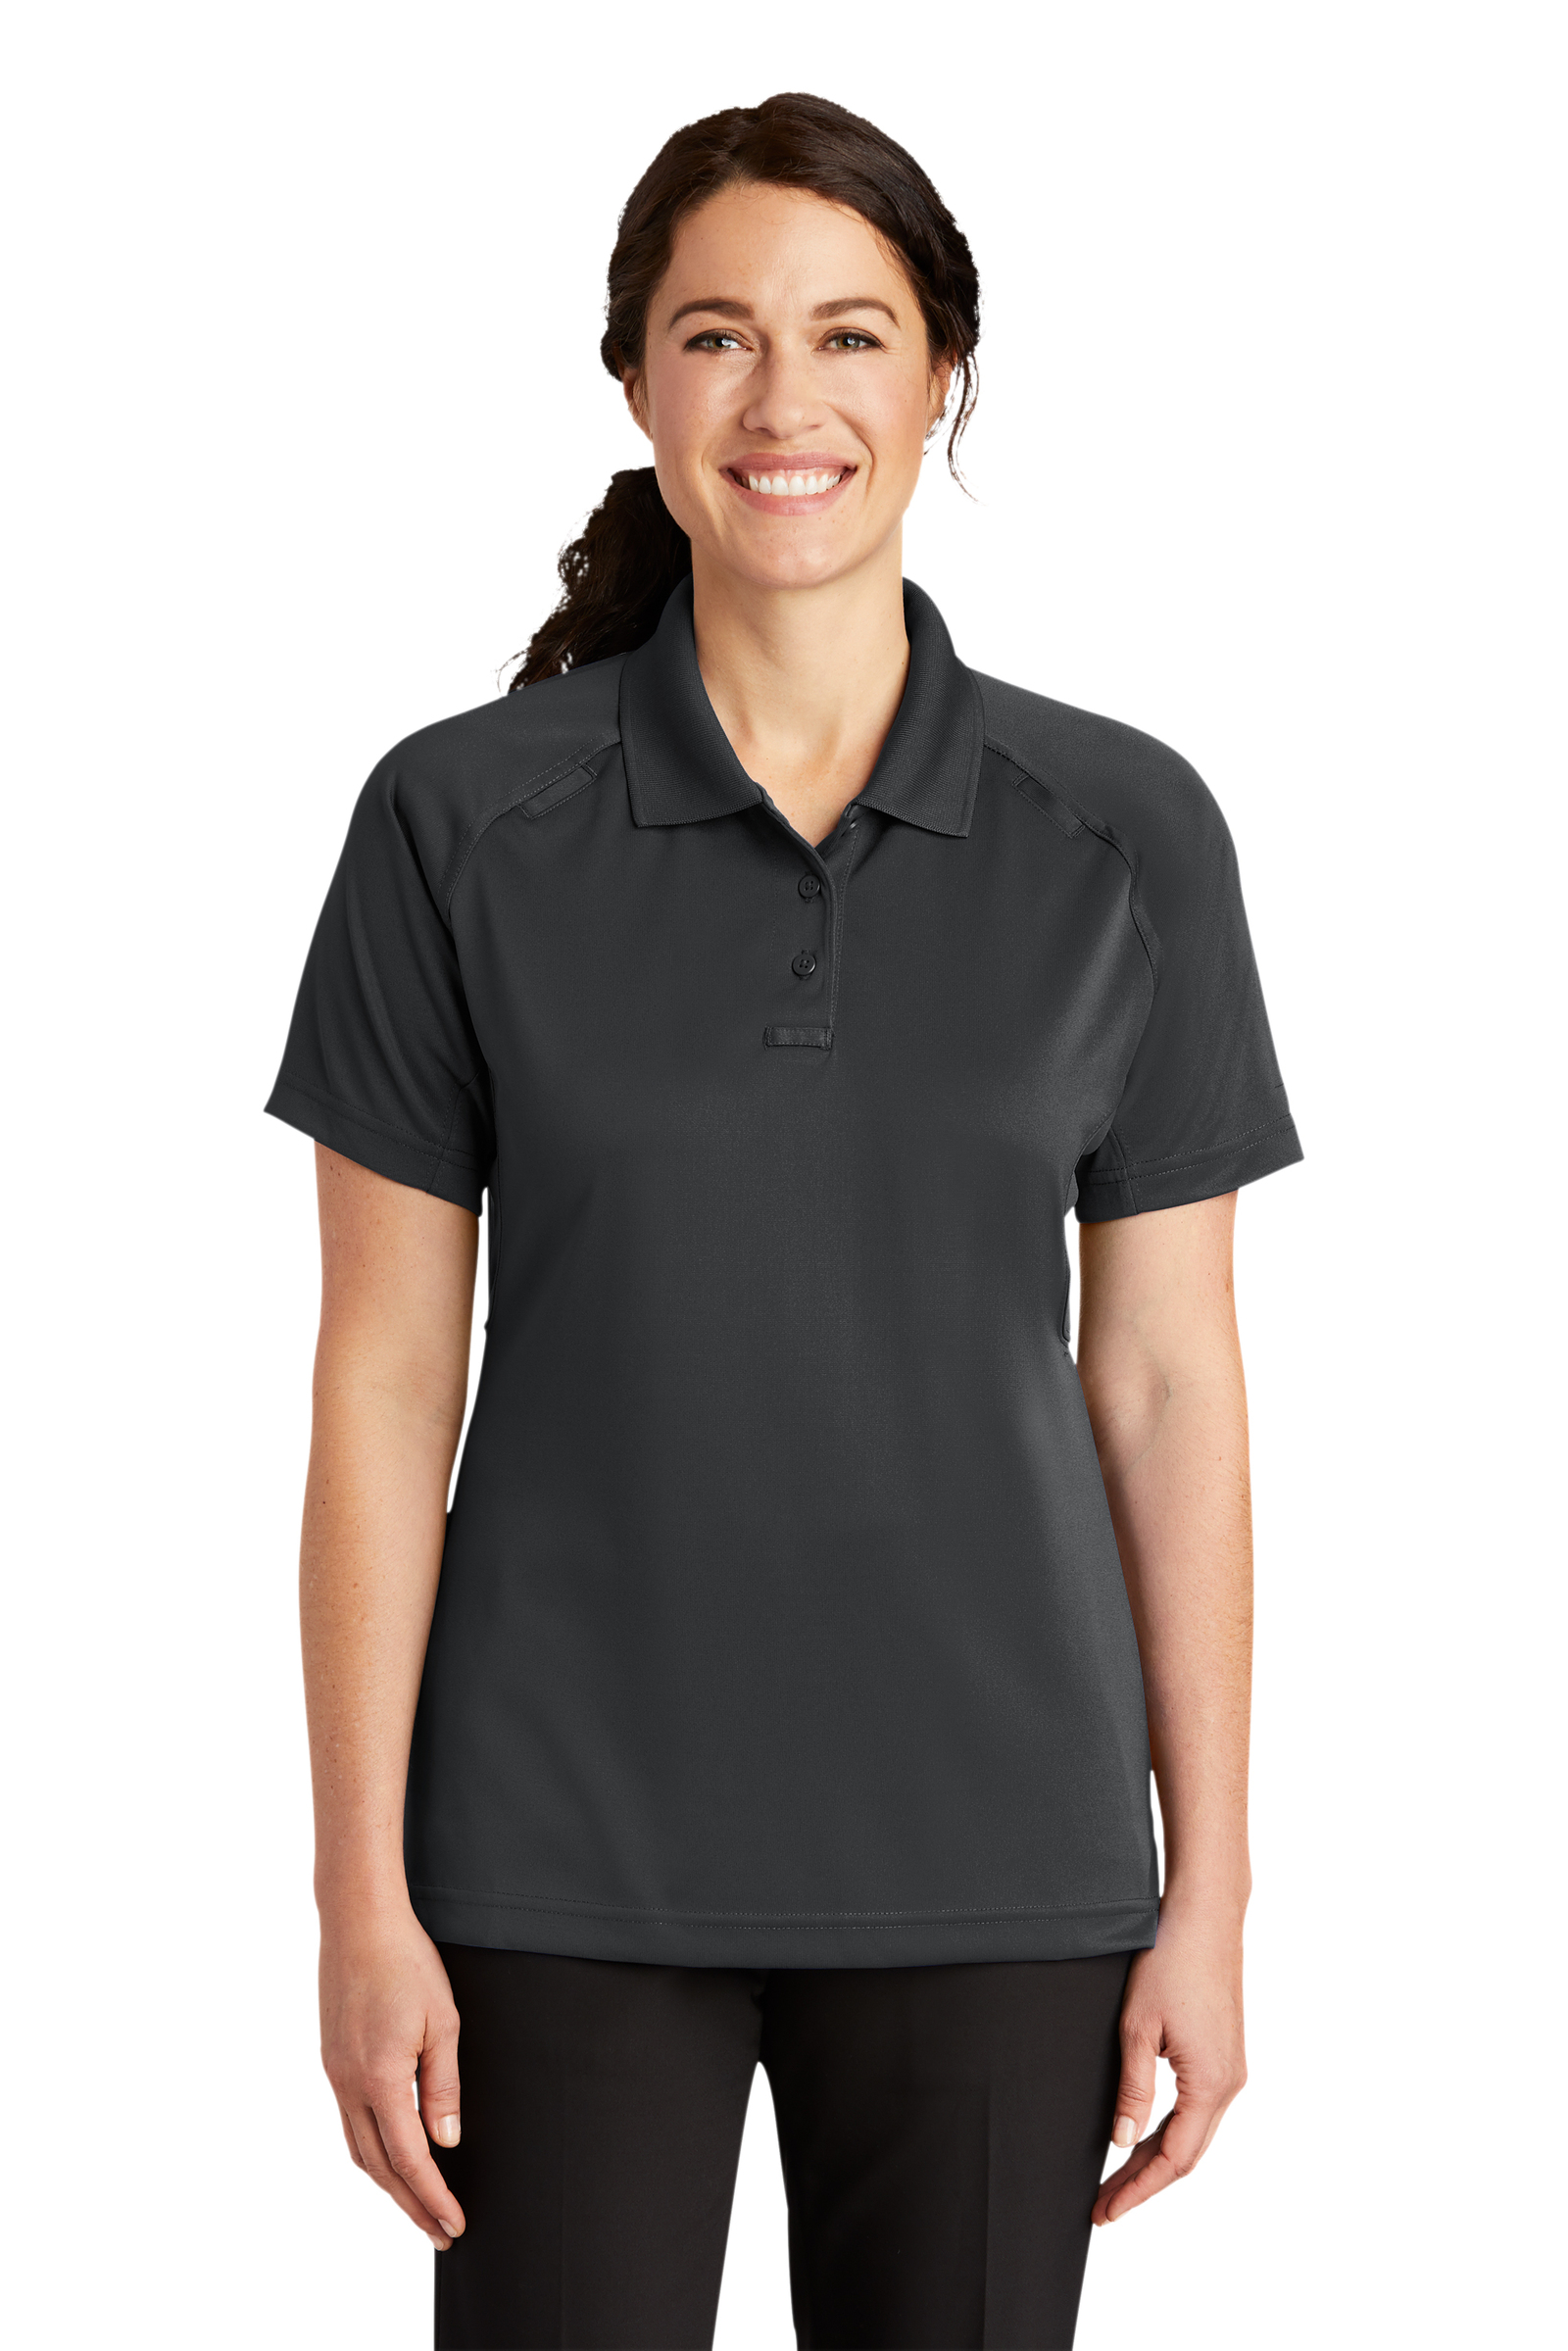 CornerStone Embroidered Women's Select Snag-Proof Tactical Polo